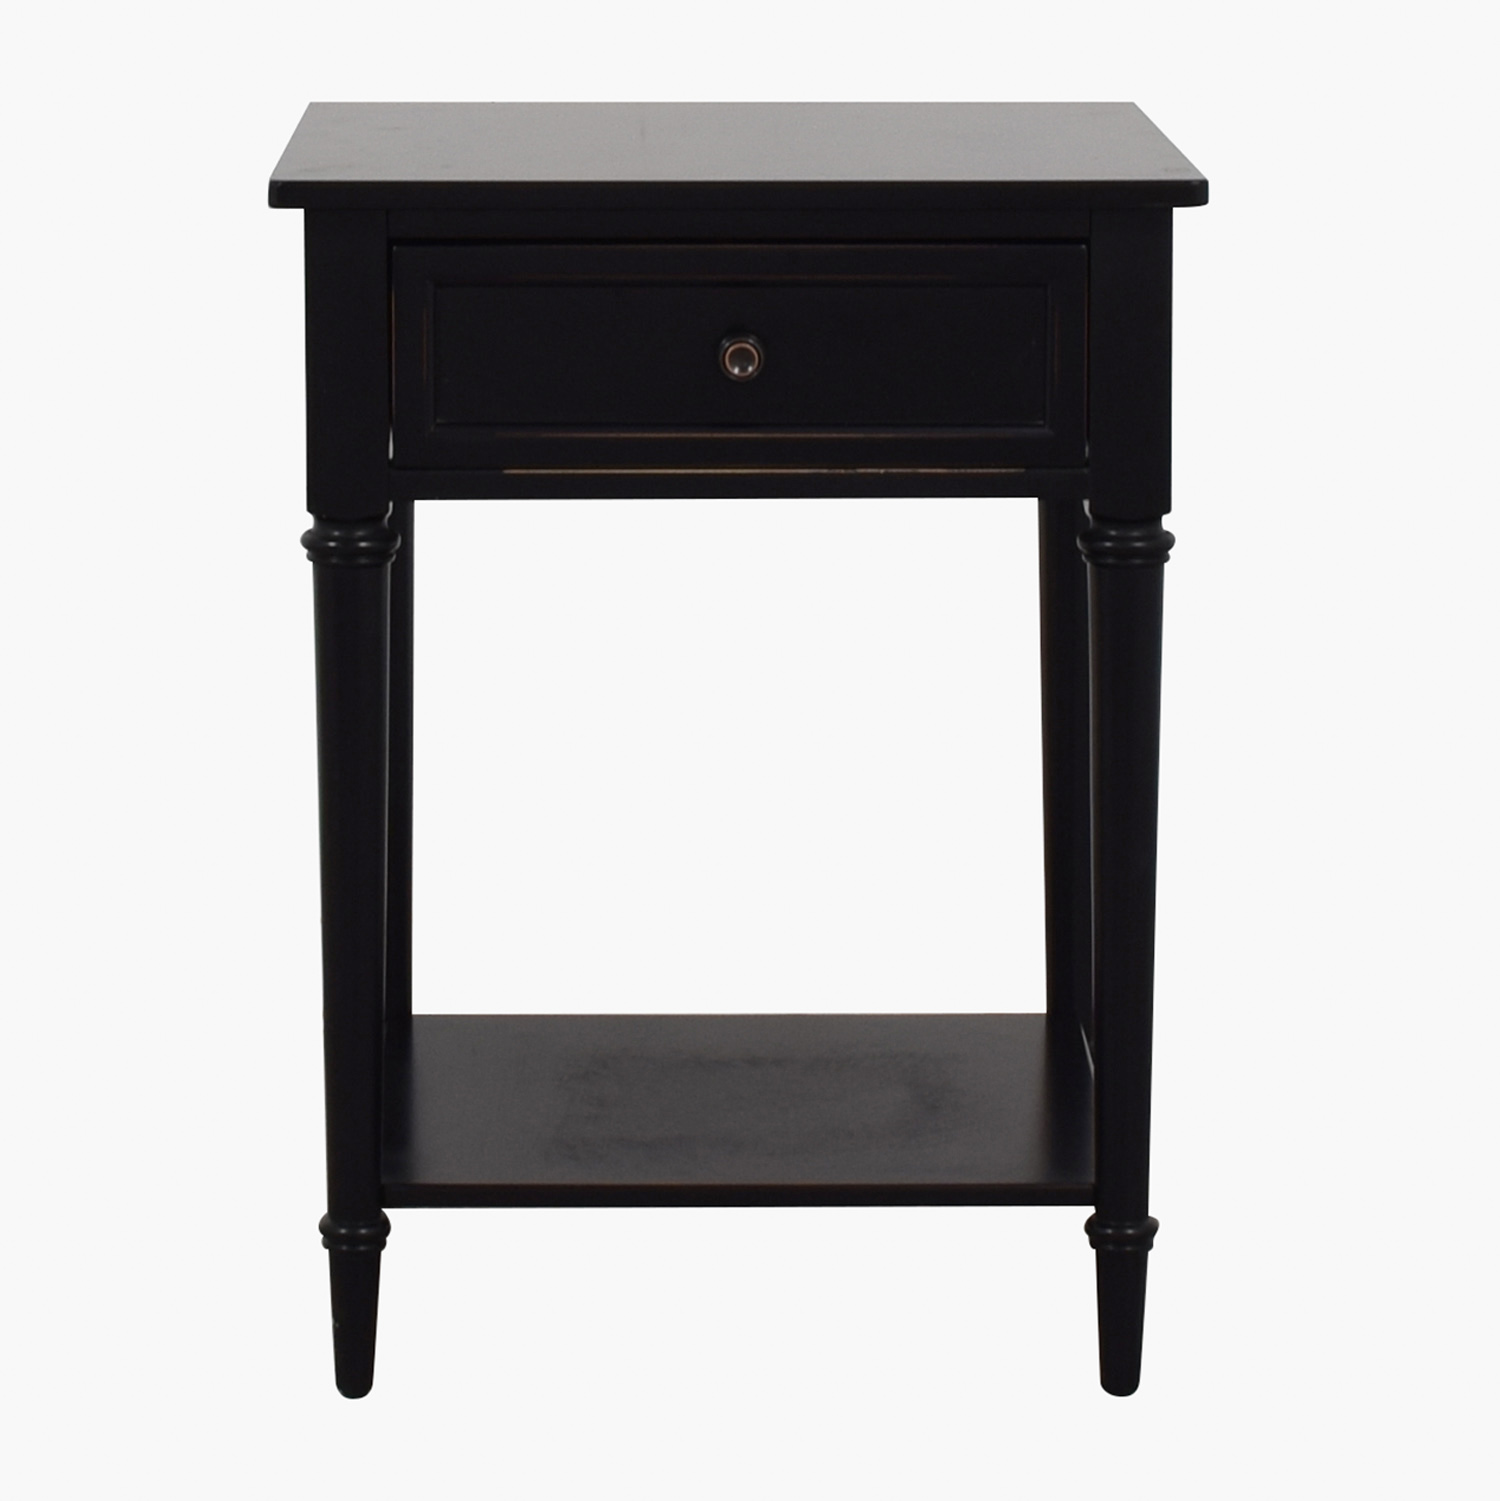 shop Pottery Barn Pottery Barn Black End Table online